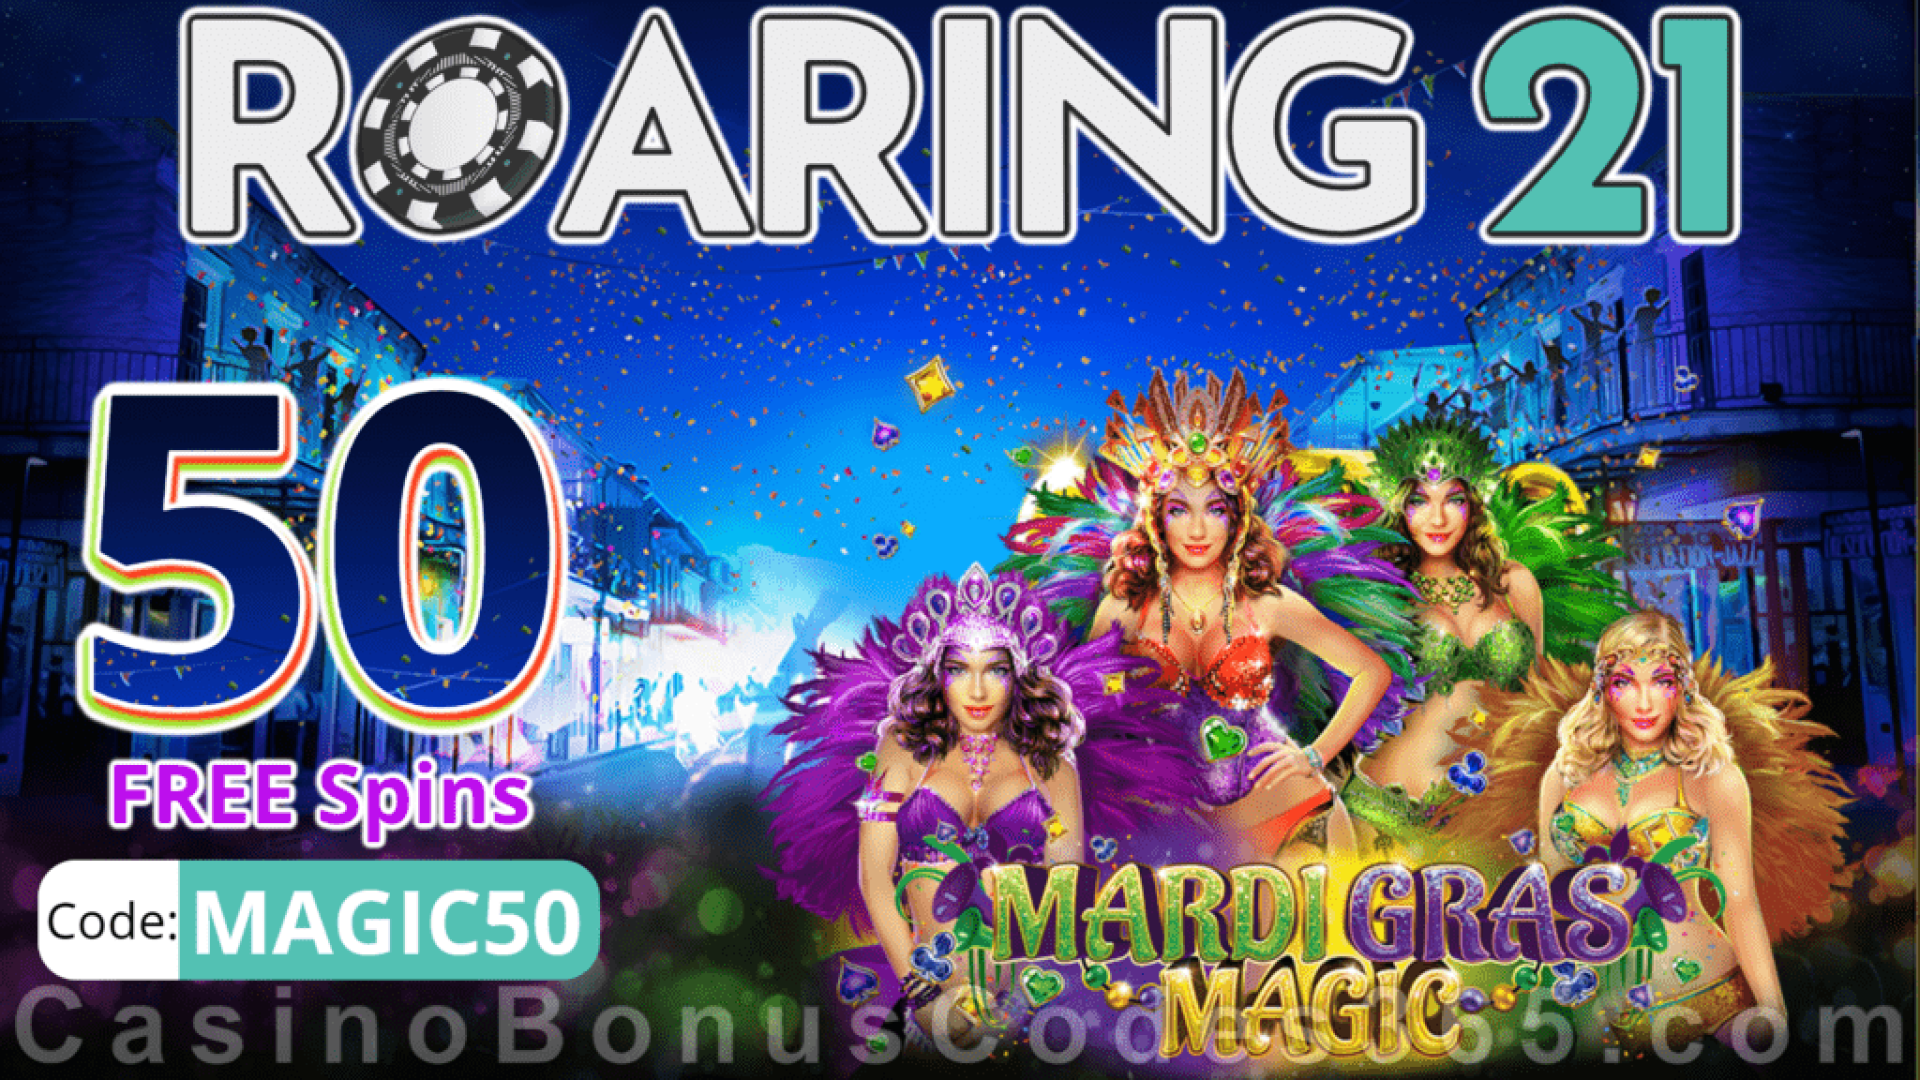 Roaring 21 New RTG Game 50 FREE Mardi Gras Magic Spins Special No Deposit New Players Deal